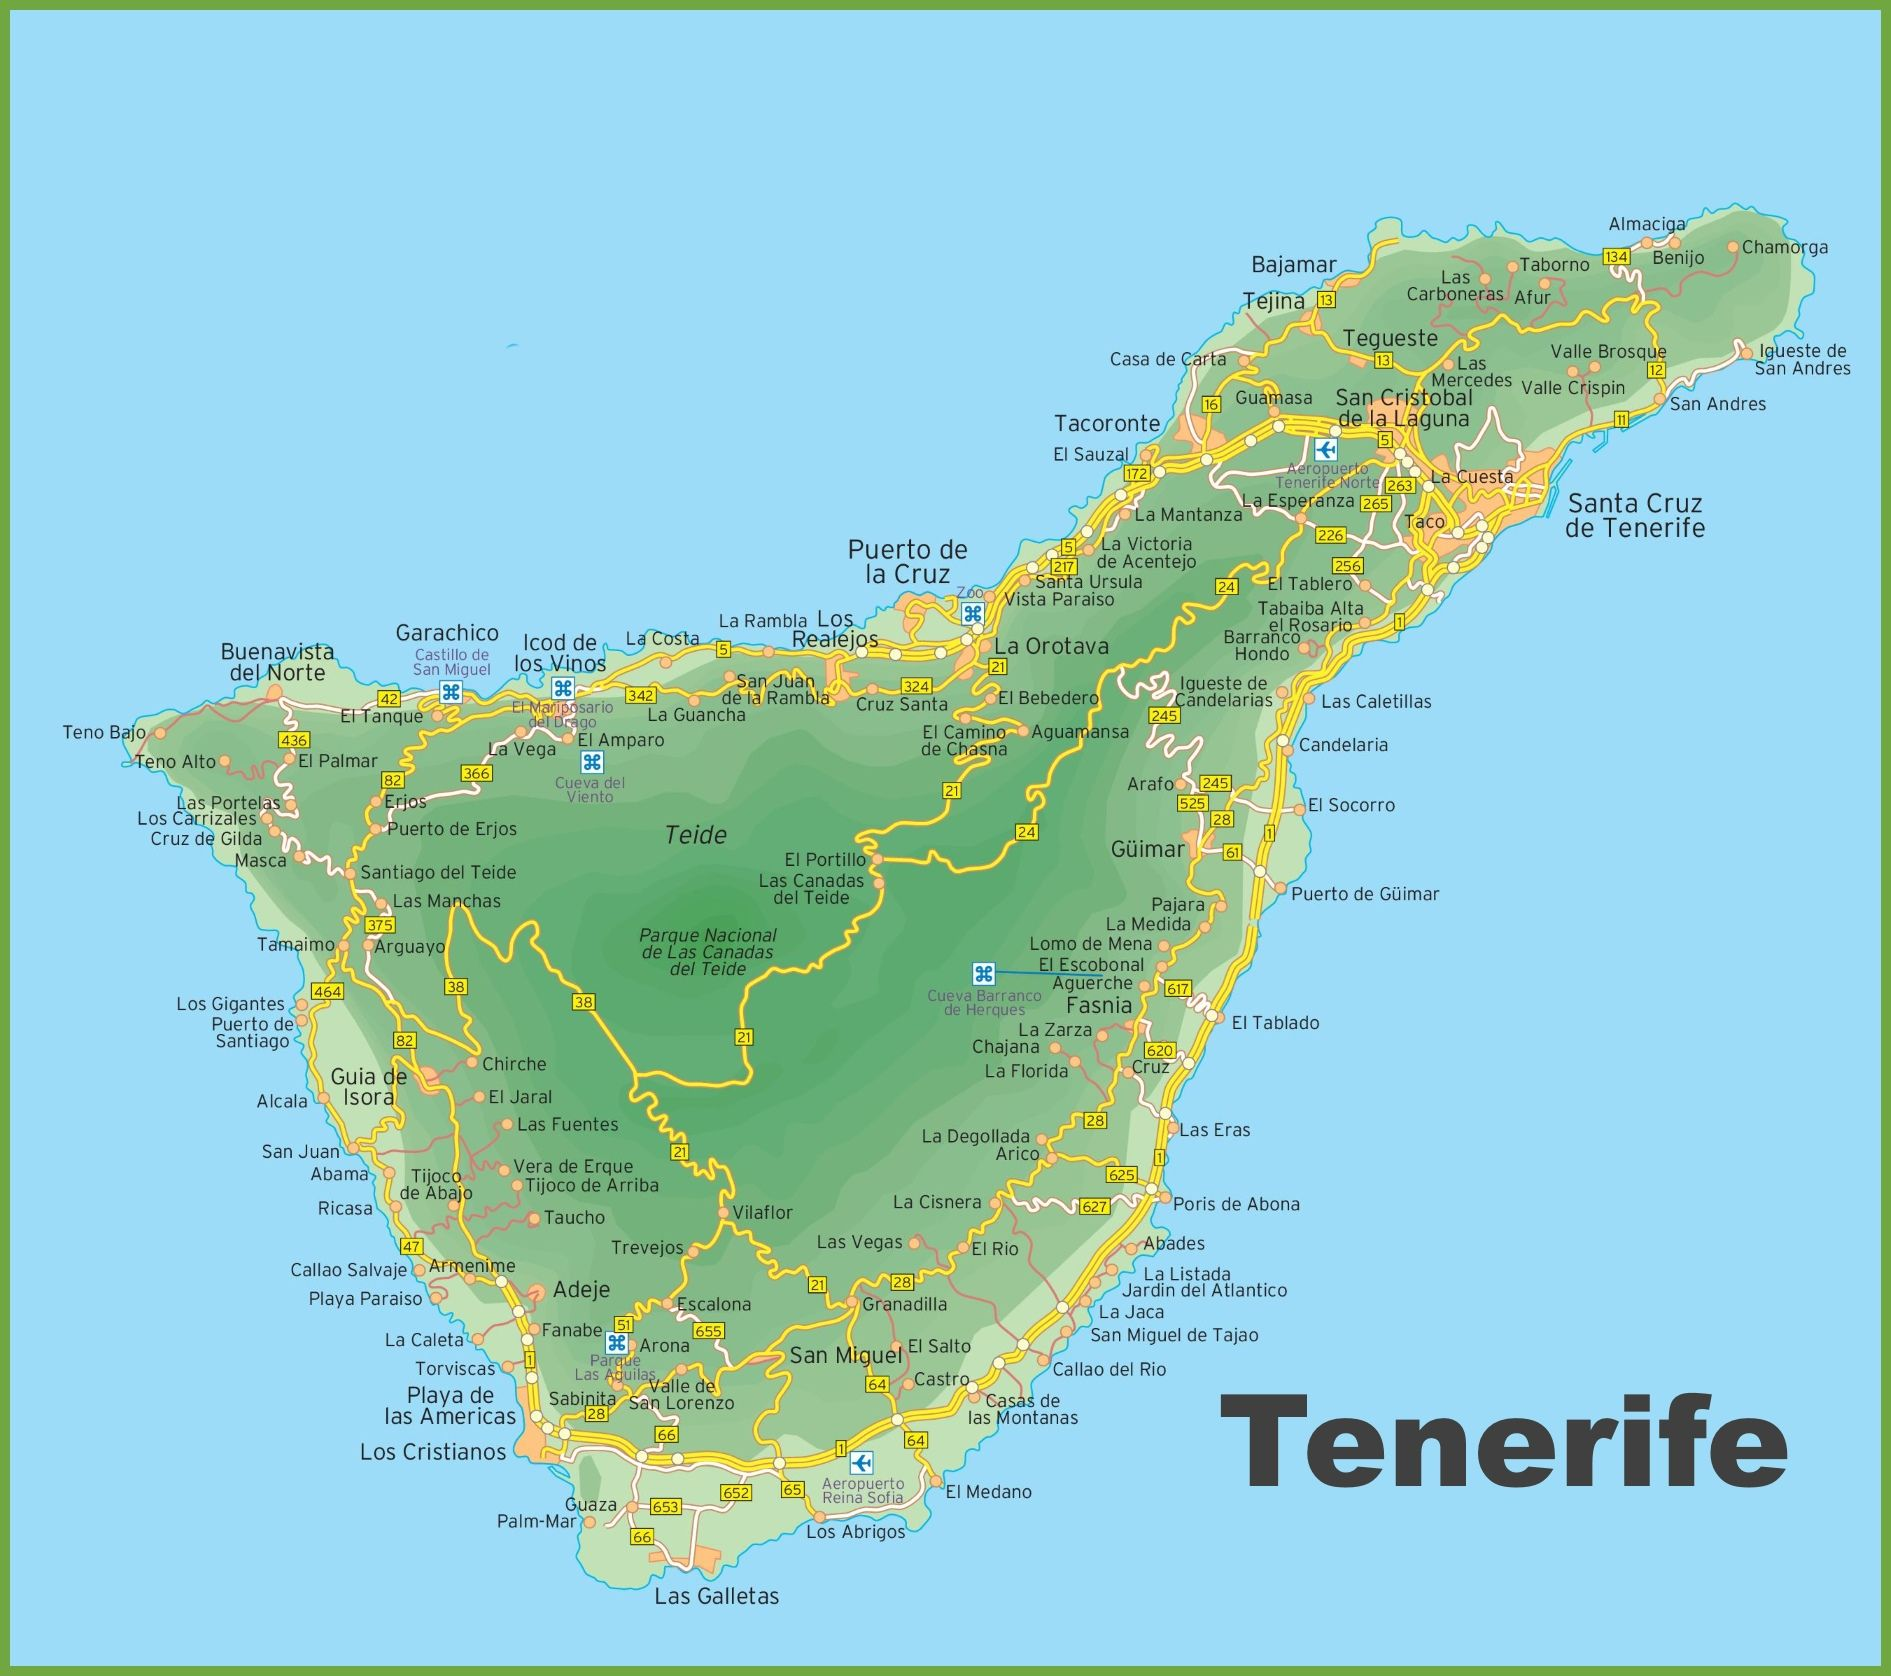 Map Of Spain And Surrounding Islands.Map Of Tenerife Island Tenerife Tenerife Map Canary Islands